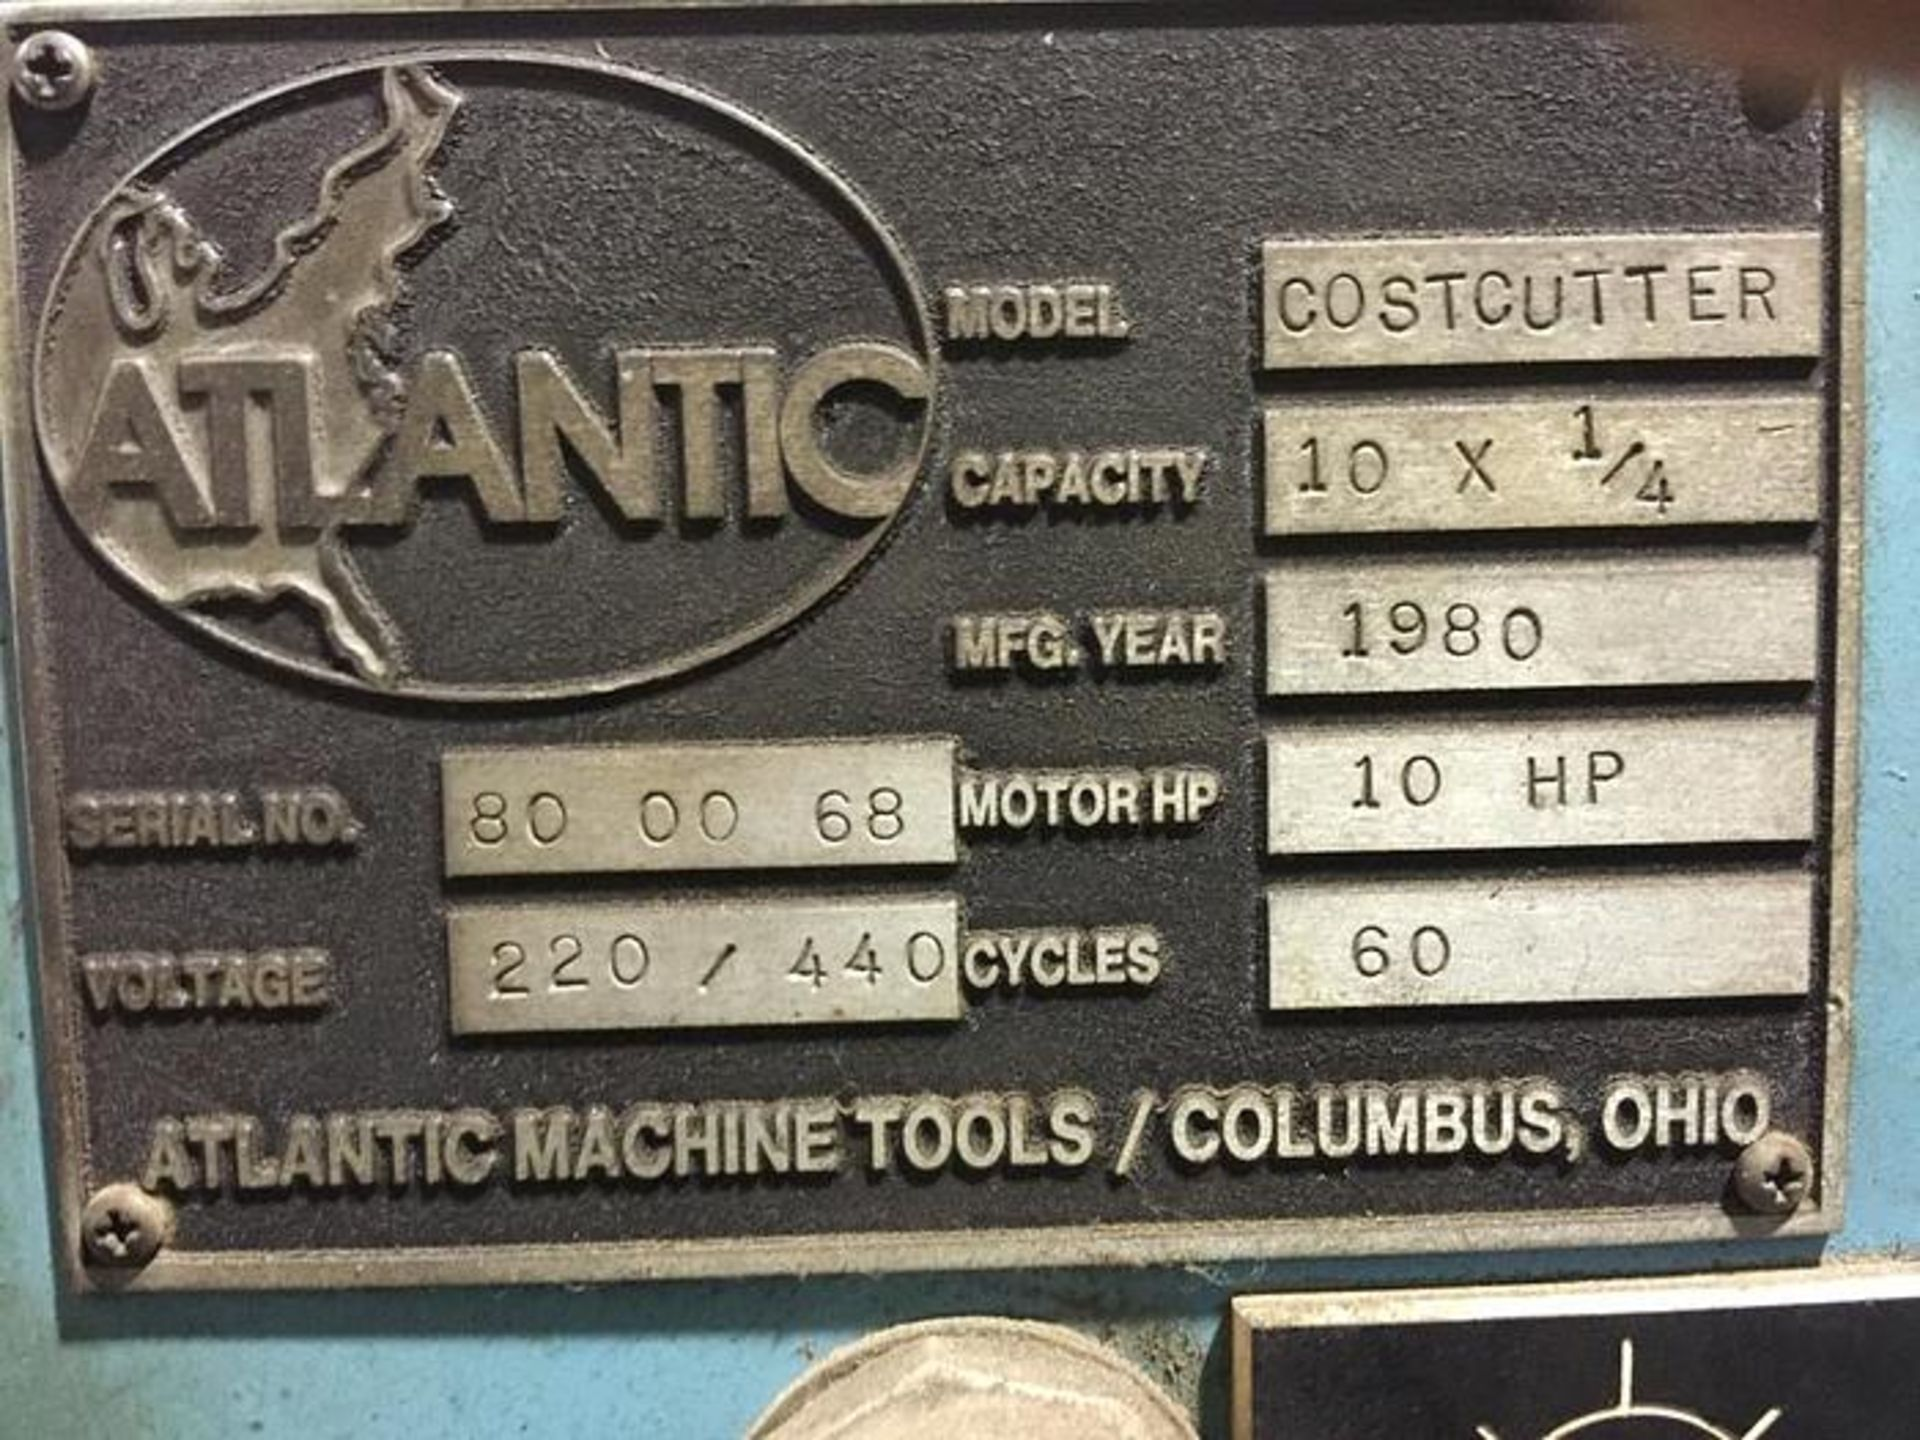 "ATLANTIC 10' X 1/4"" COST CUTTER HYDRAULIC POWER SQUARING SHEAR, SN 80-00-68 - Image 5 of 5"